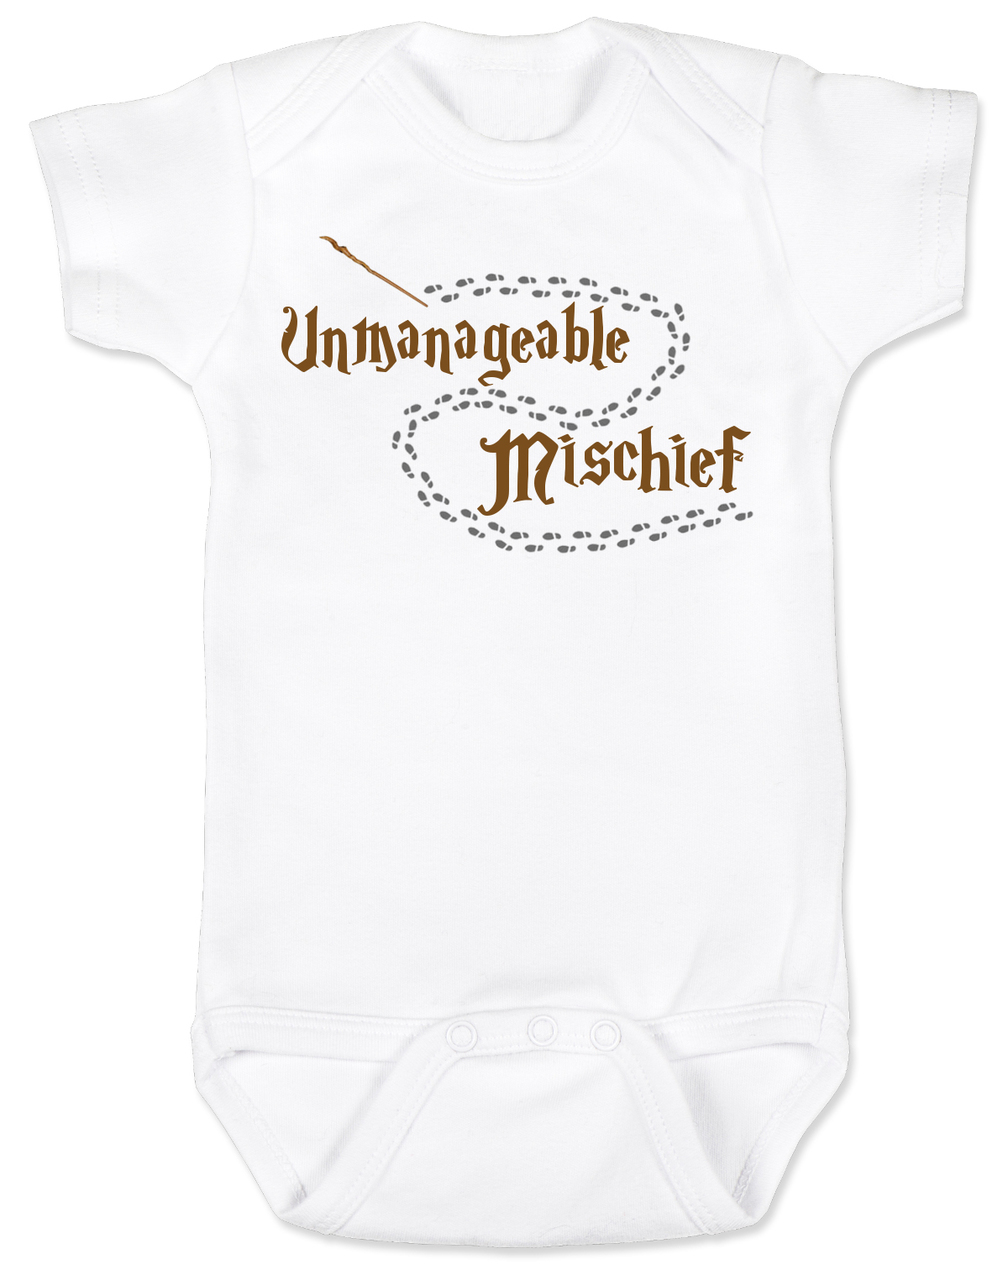 20682a1216d1f9 Unmanageable Mischief baby Bodysuit, funny harry potter baby Bodysuit, baby  gift for harry potter